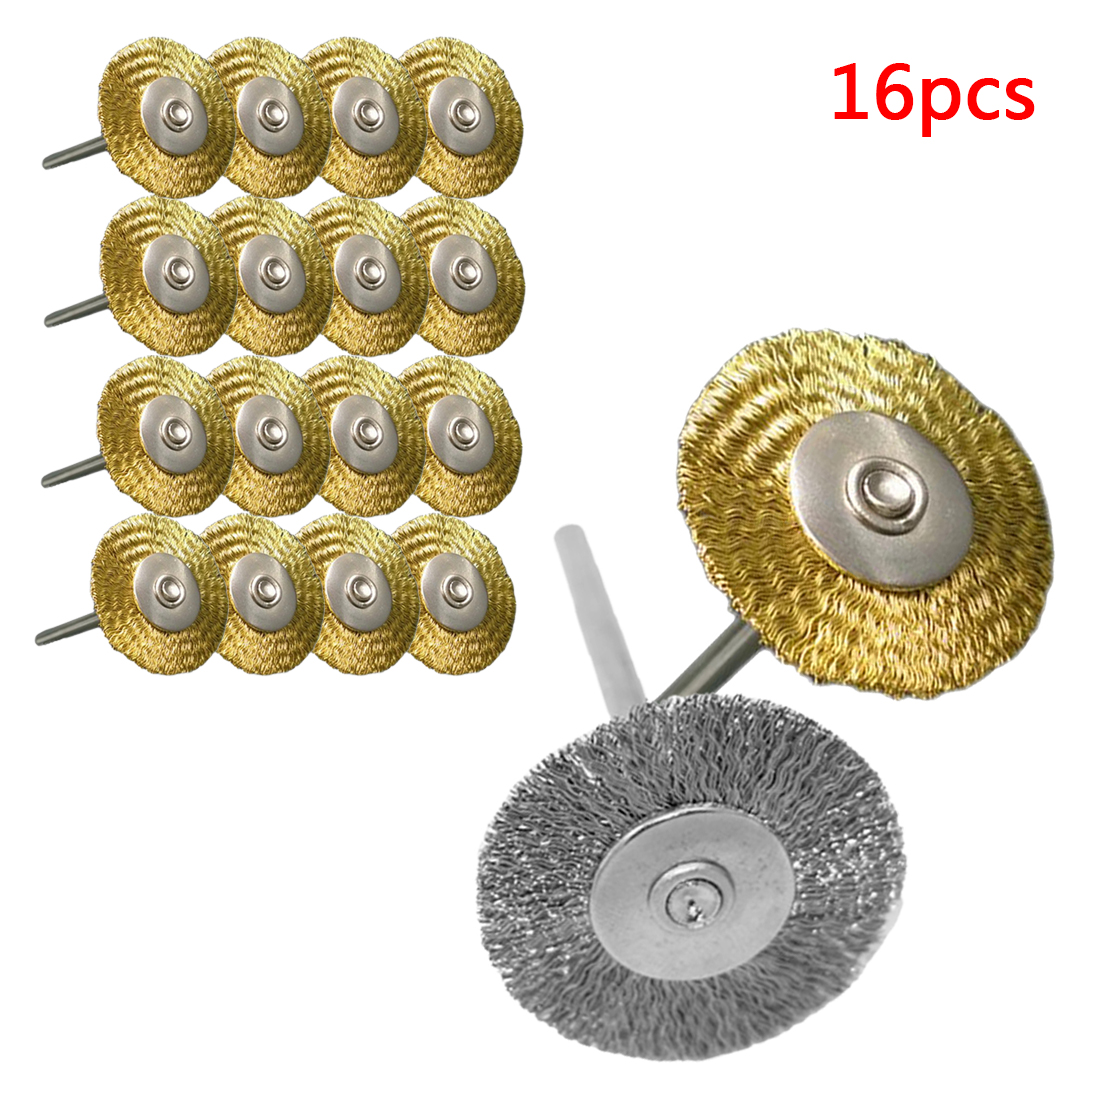 25mm 16pcs Platinum Blades Steel Wire Wheel Brush Dremel Rotary Tool For Mini Drill Tools Polishing Dremel Accessories